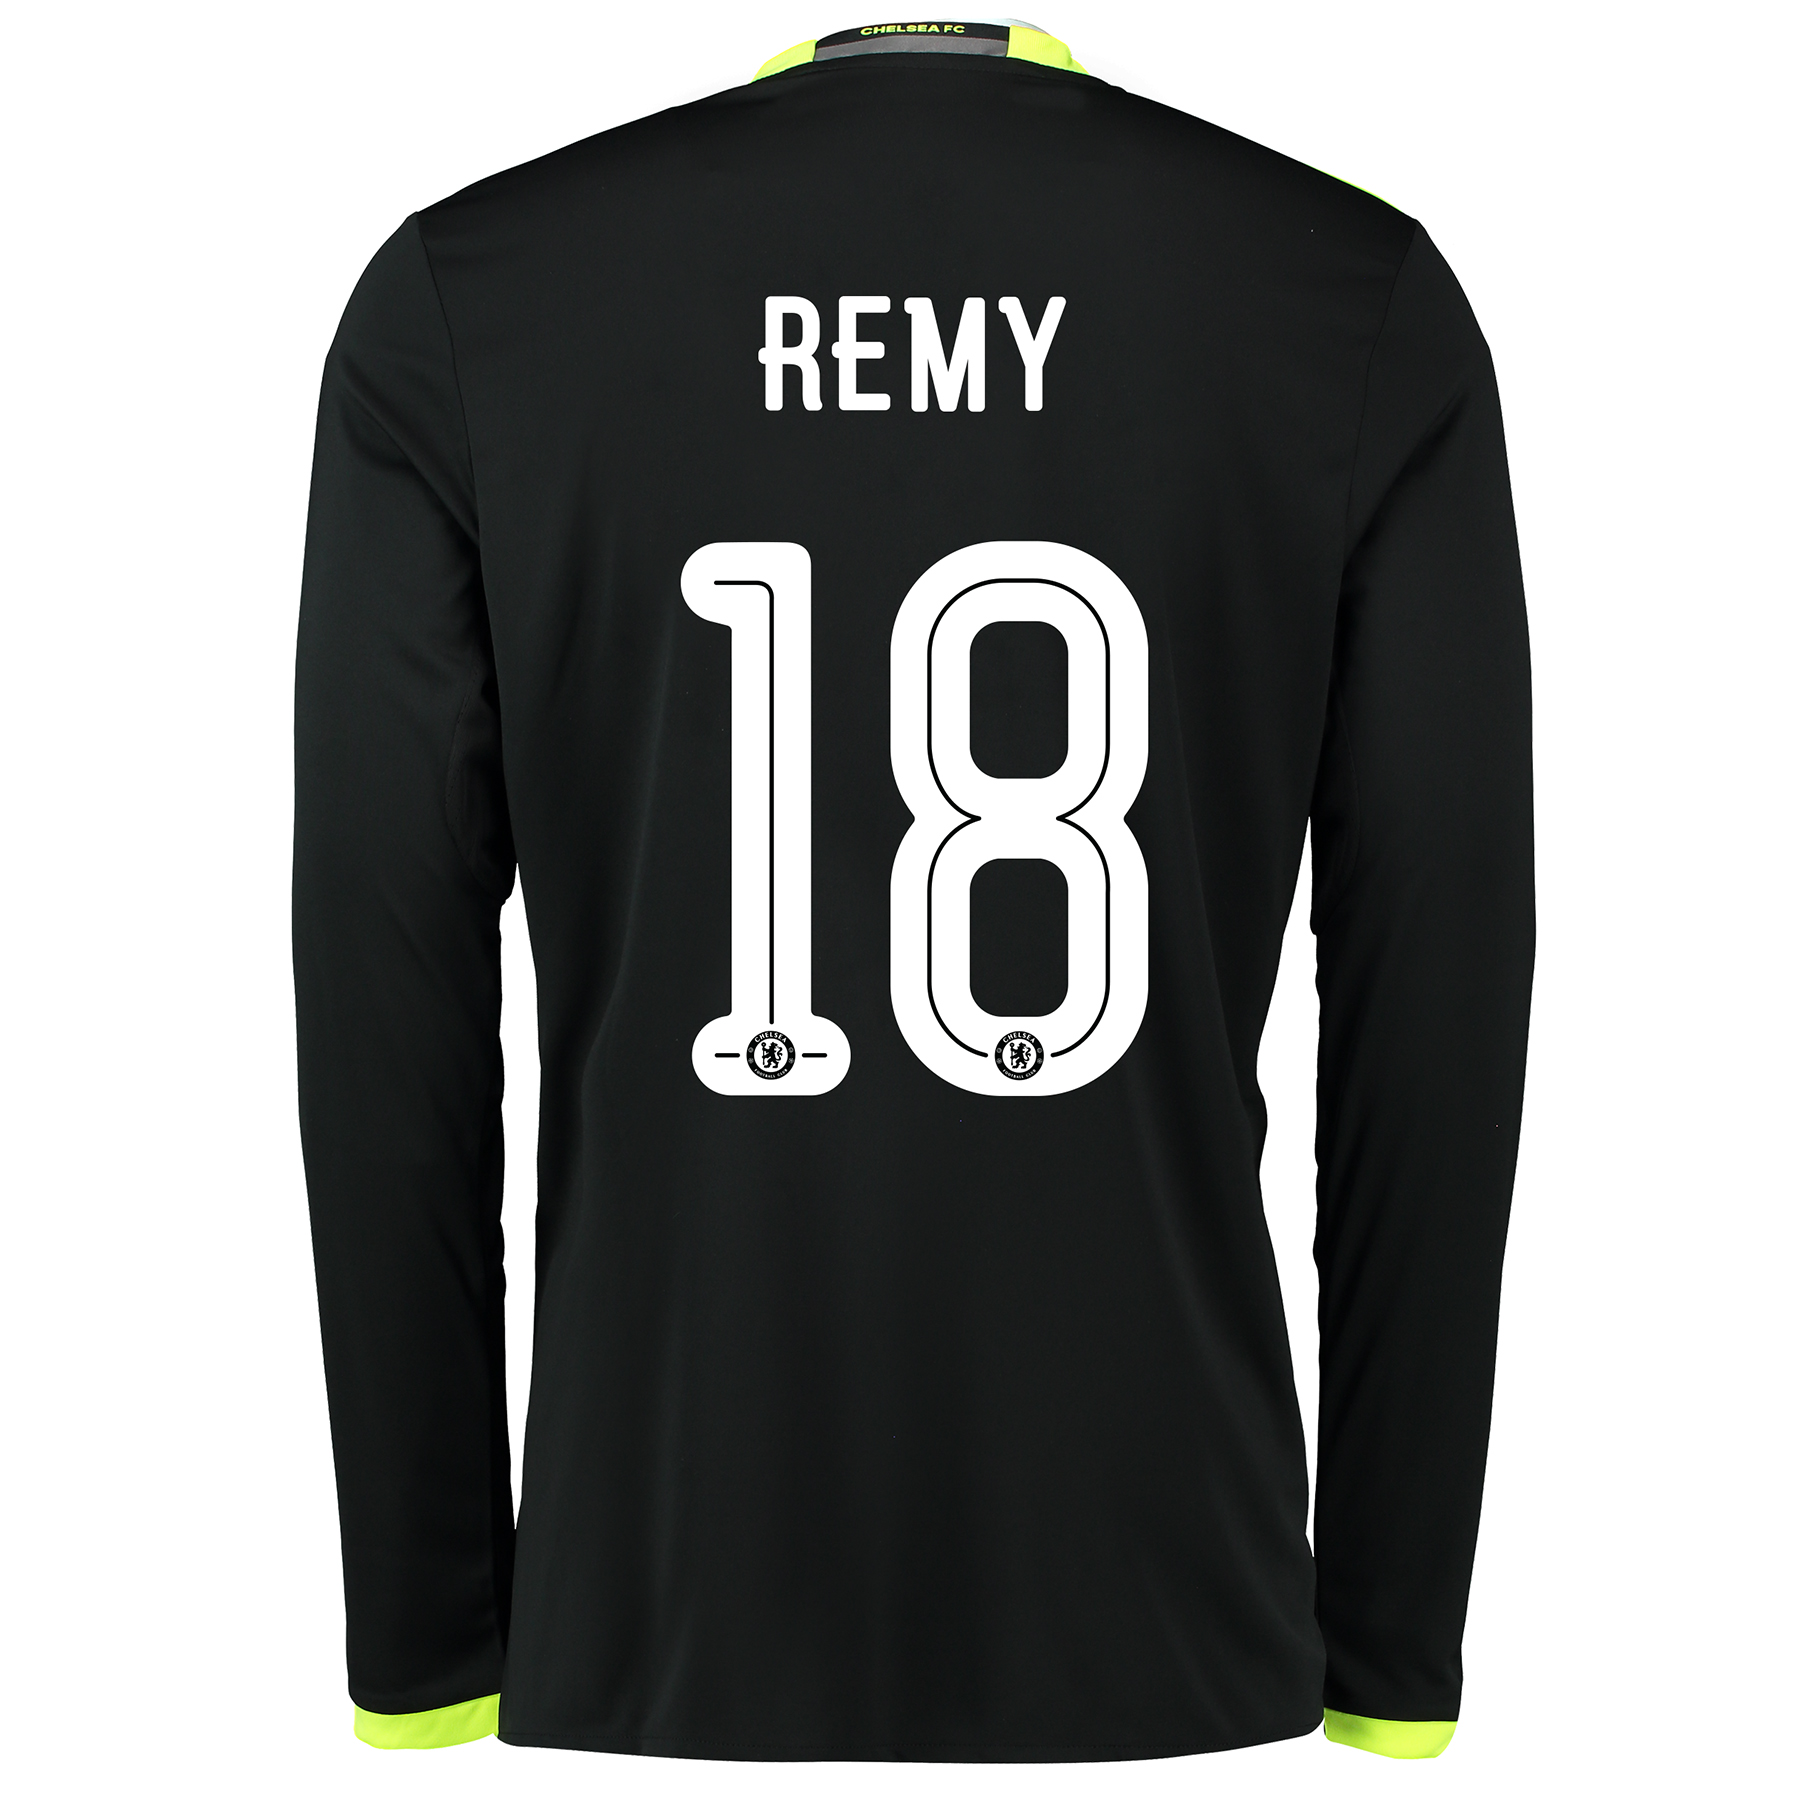 Chelsea Linear Away Shirt 16-17 - Kids - Long Sleeve with Remy 18 prin